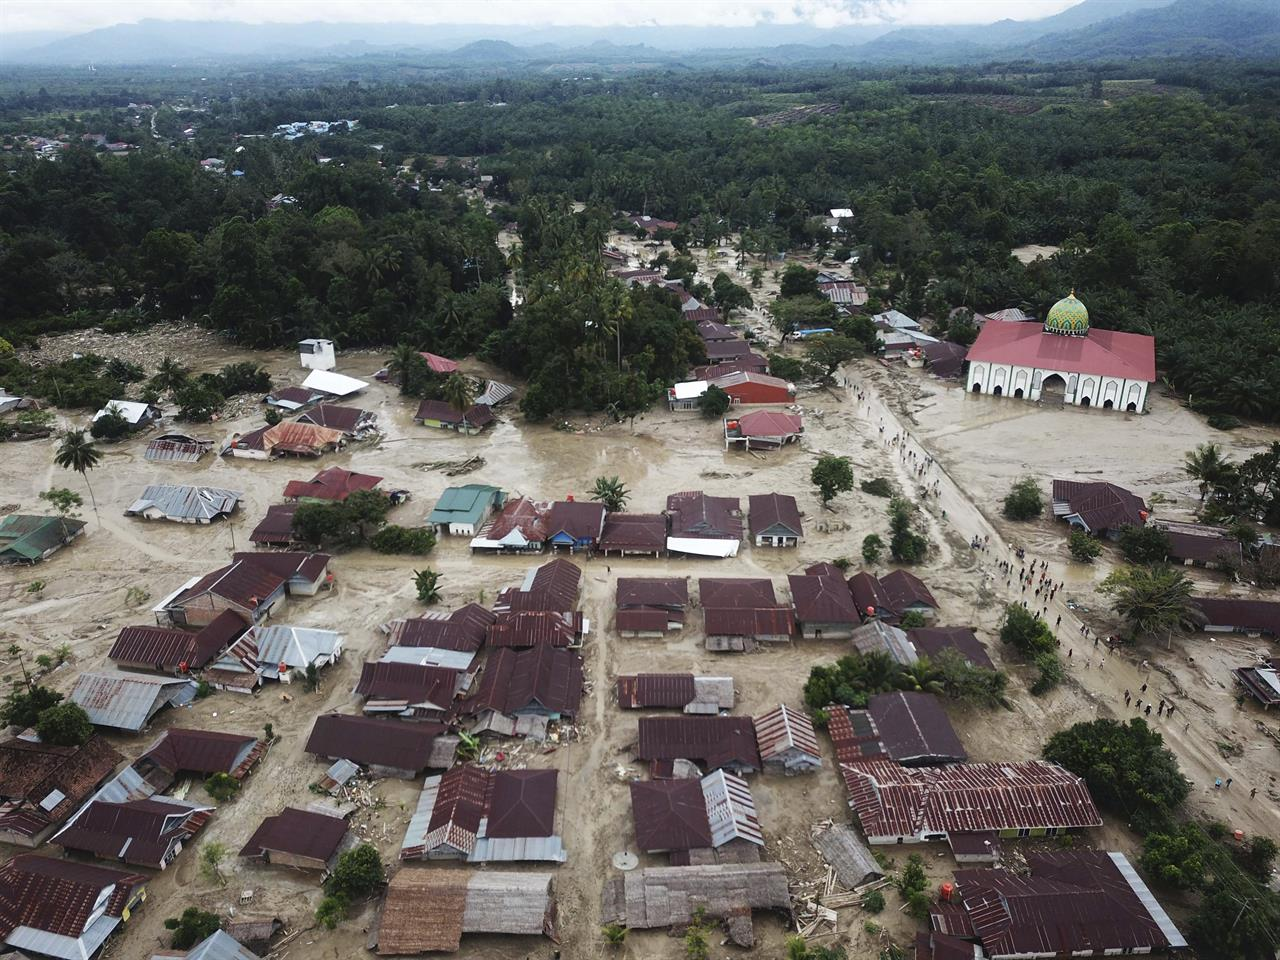 Death toll in Indonesia flash floods rises to 32; 16 missing